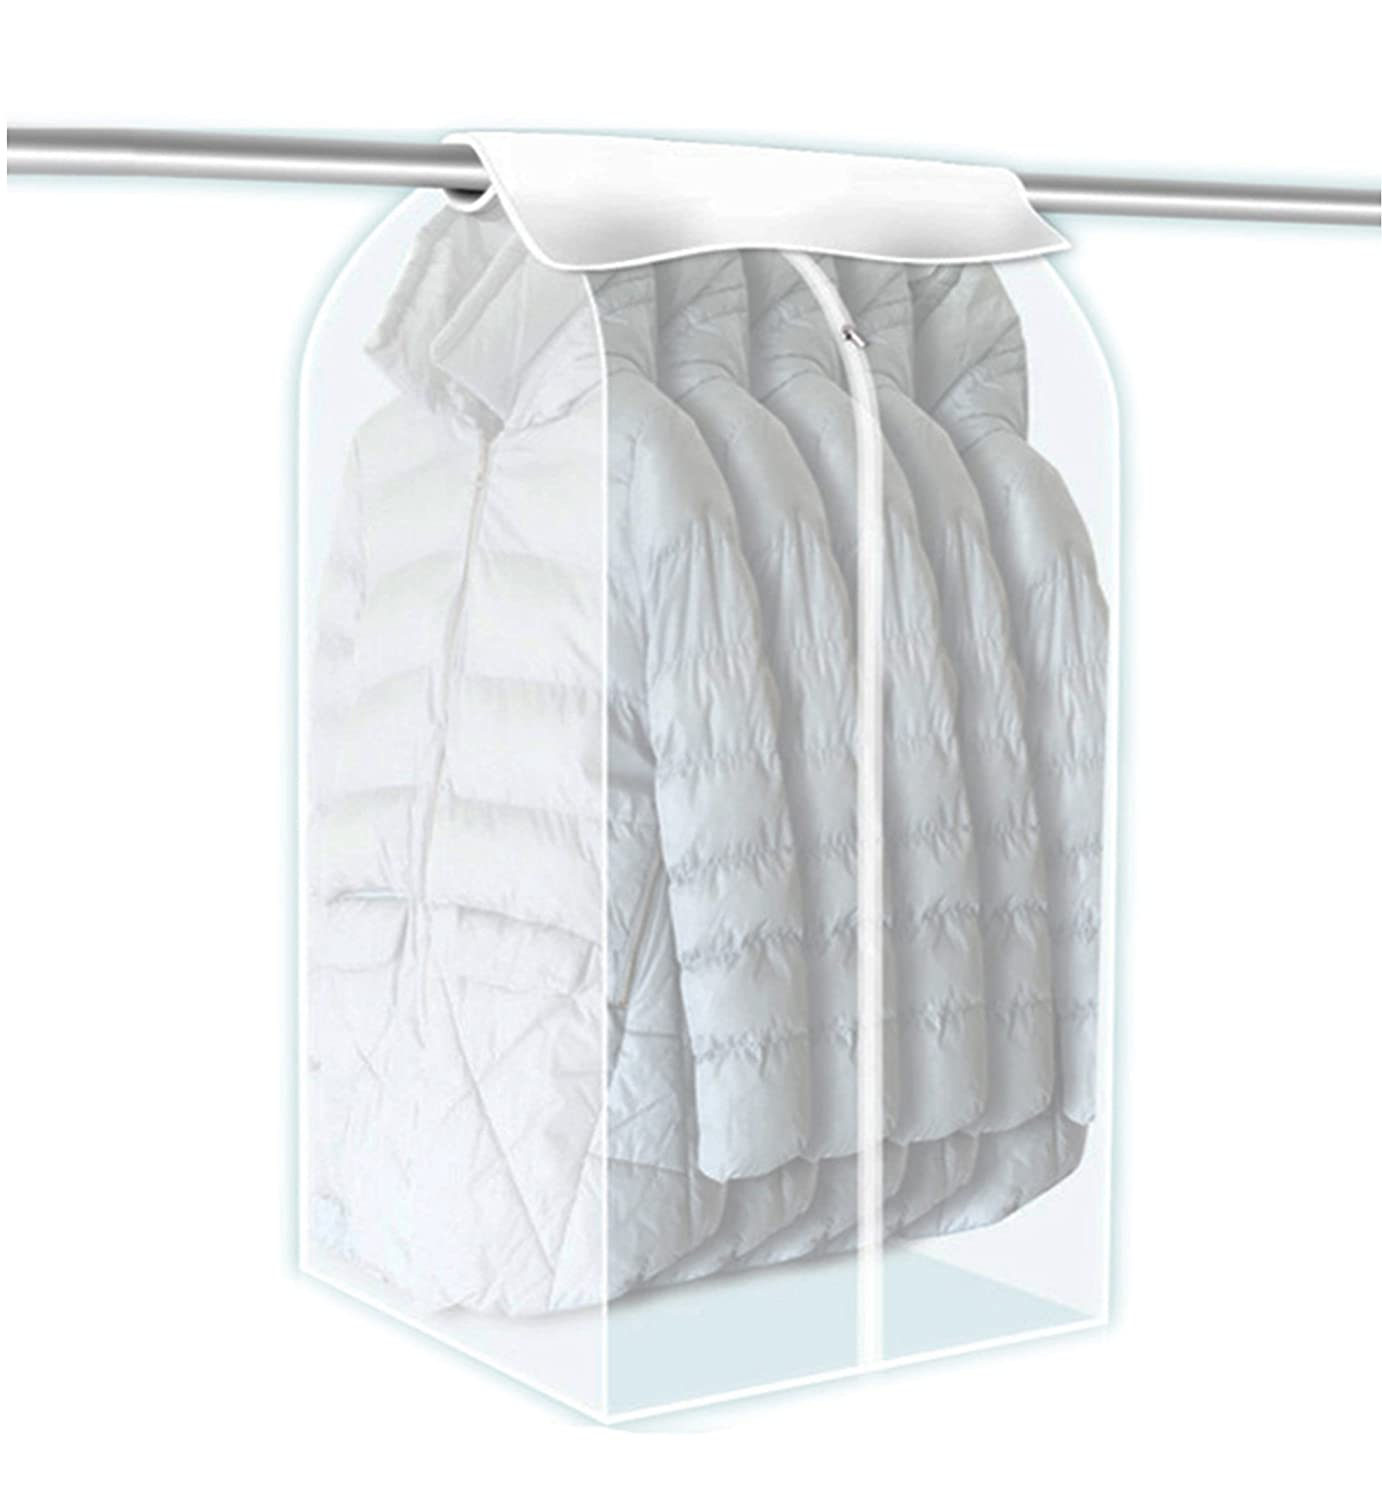 Yunko Garment Cover Bag Hanging Wardrobe Garment Closet Suit Garment Cover Bag Organize Storage Bag Clothes Dust Cover (Clear)